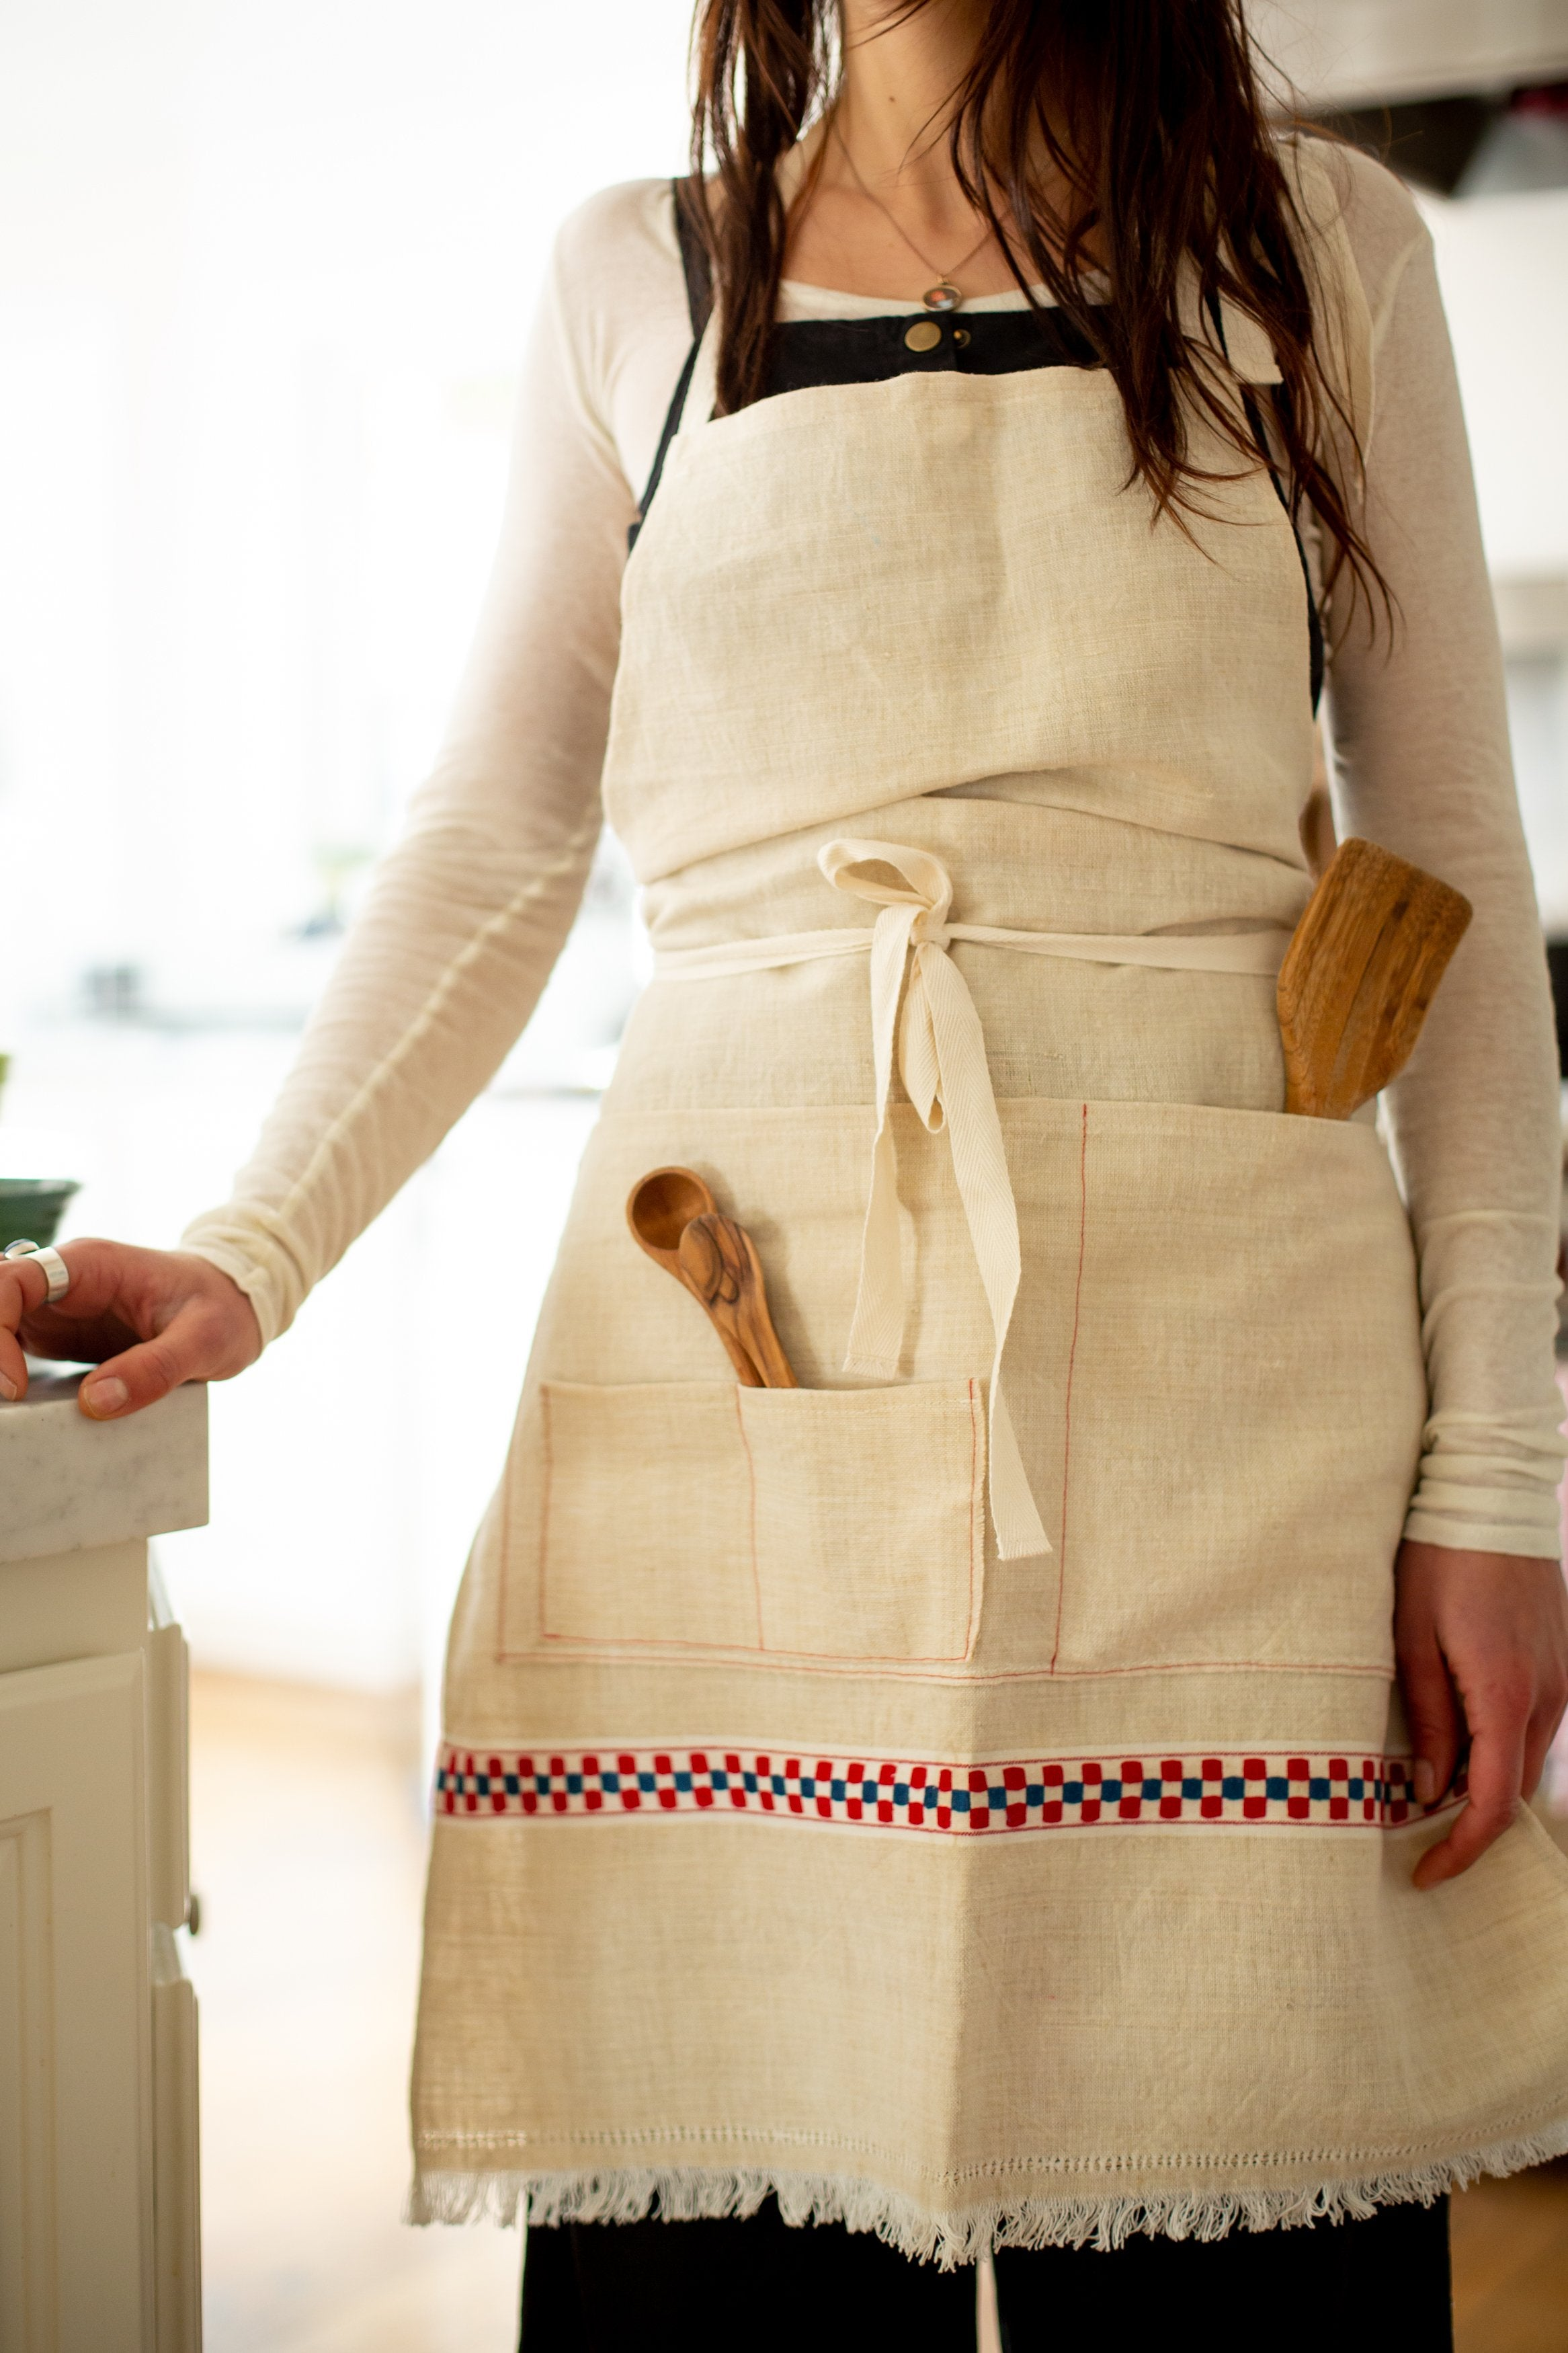 Apron: Full style, vintage handwoven Hungarian hemp - A28